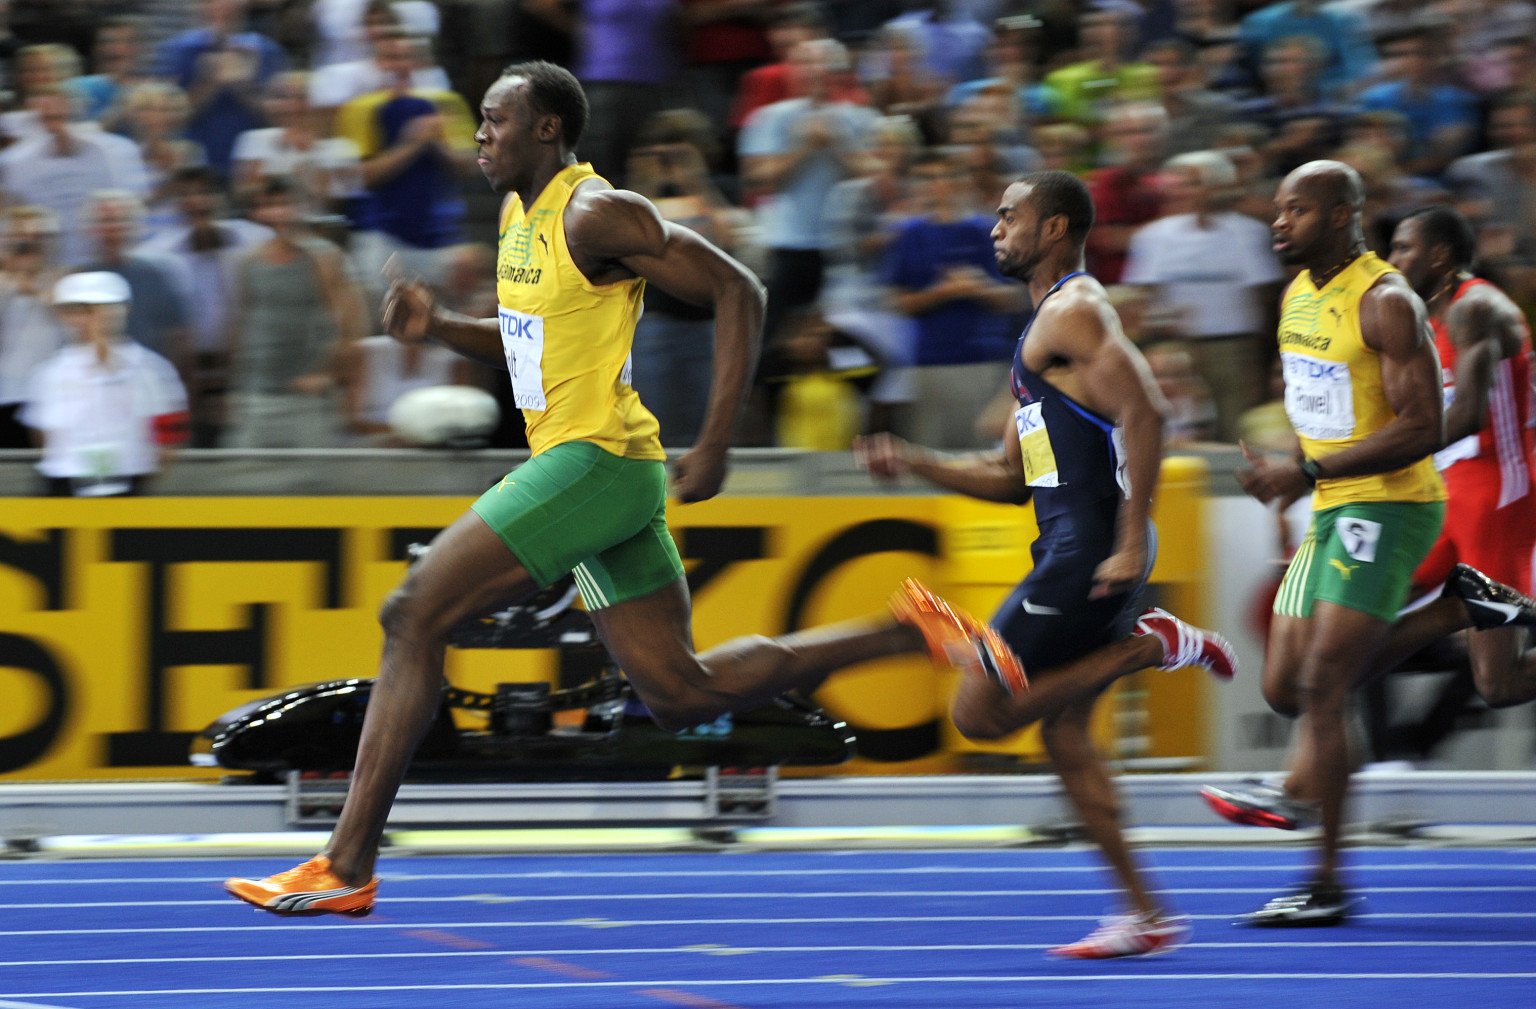 Usain Bolt Running Speed Video - www.proteckmachinery.com